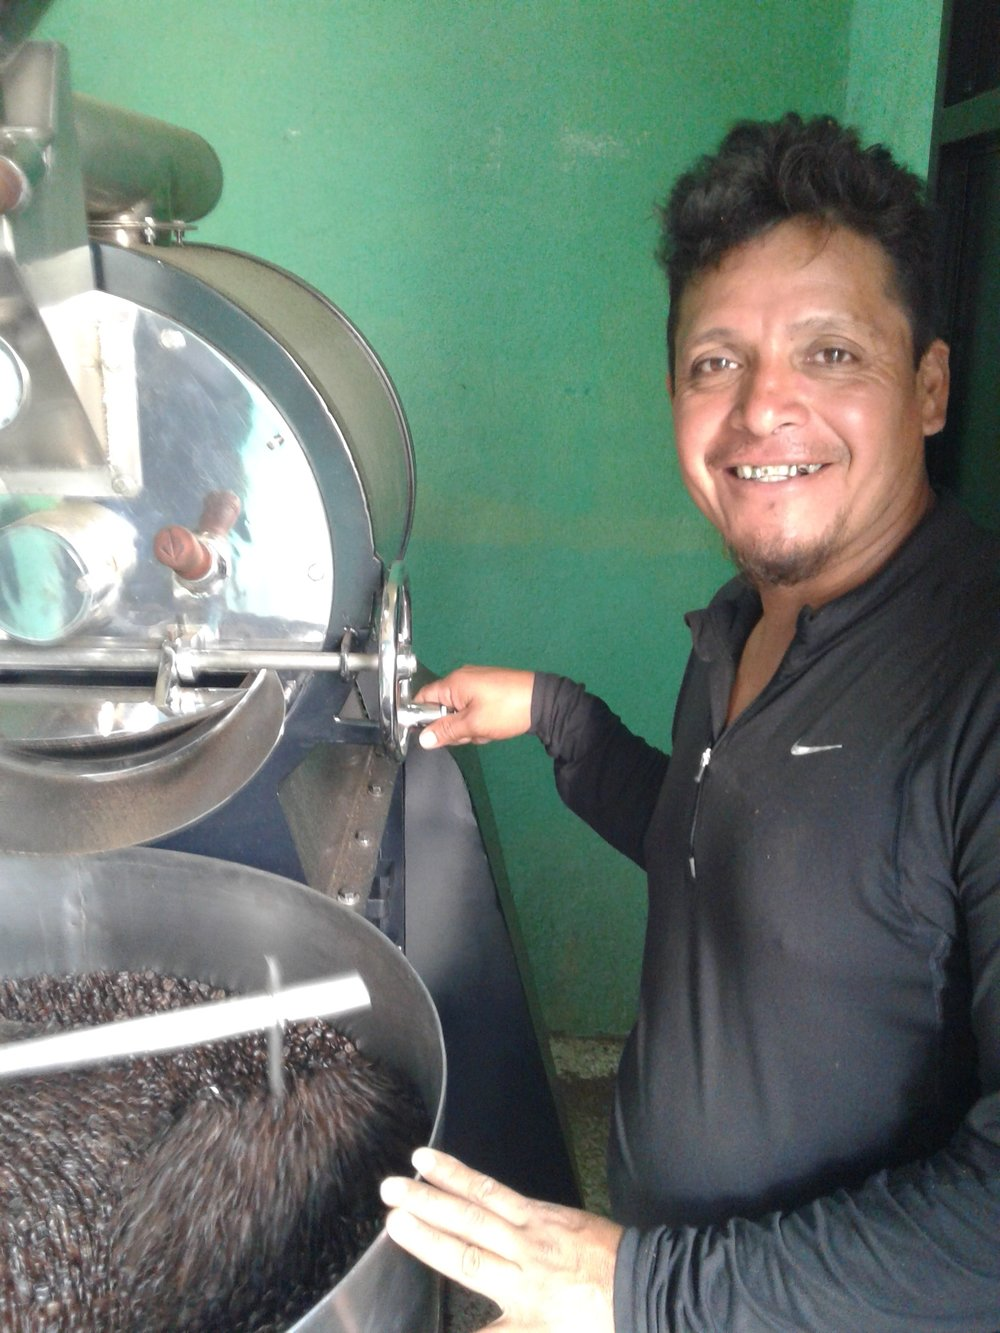 Pictured: Victor using the coffee roaster SGDF helped him purchase.